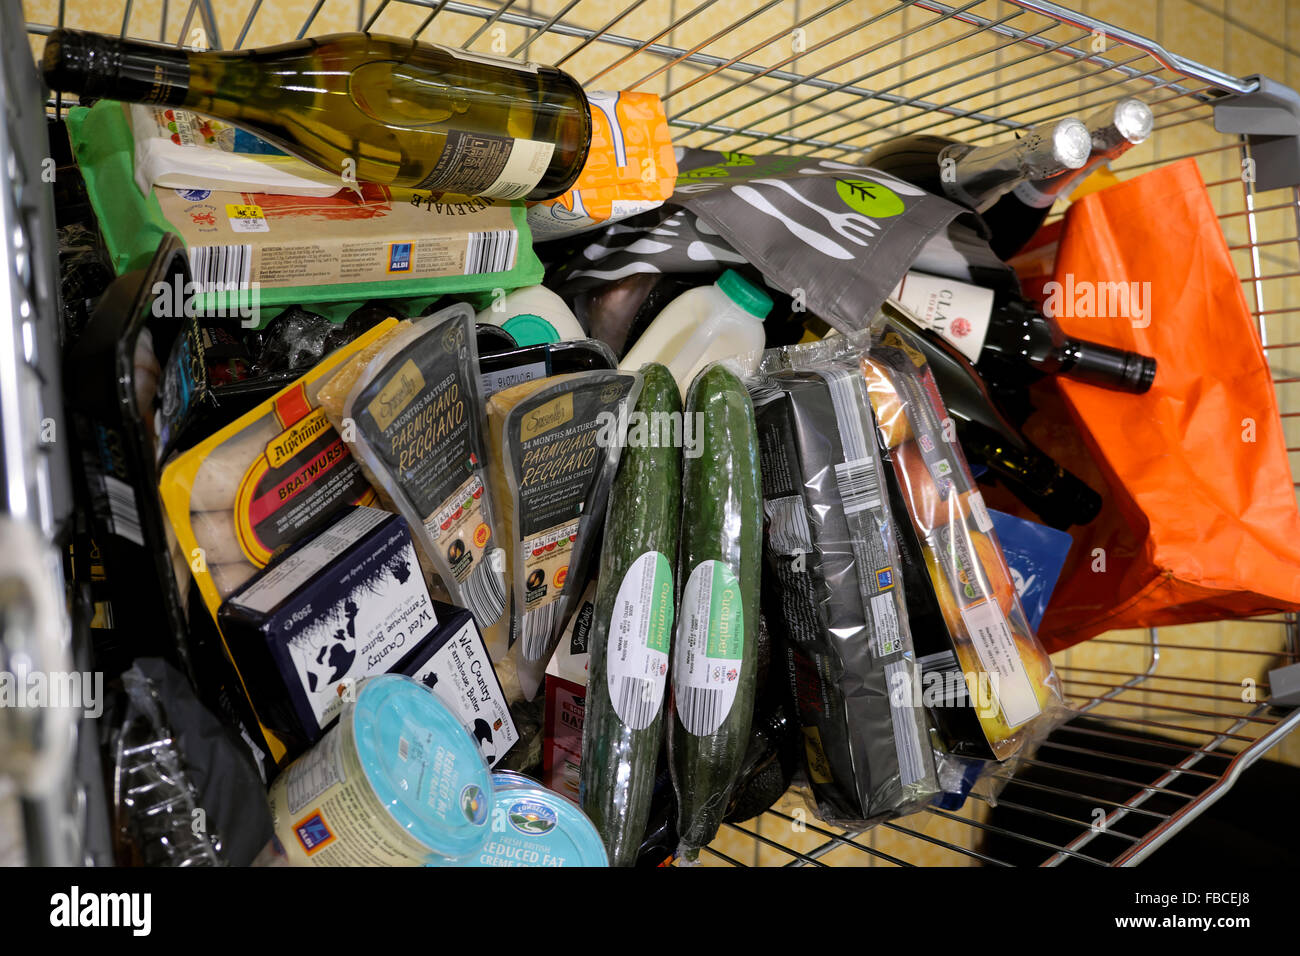 A full supermarket trolley at Aldi's supermarket with food and wine products in packaging and Aldi bags Wales - Stock Image